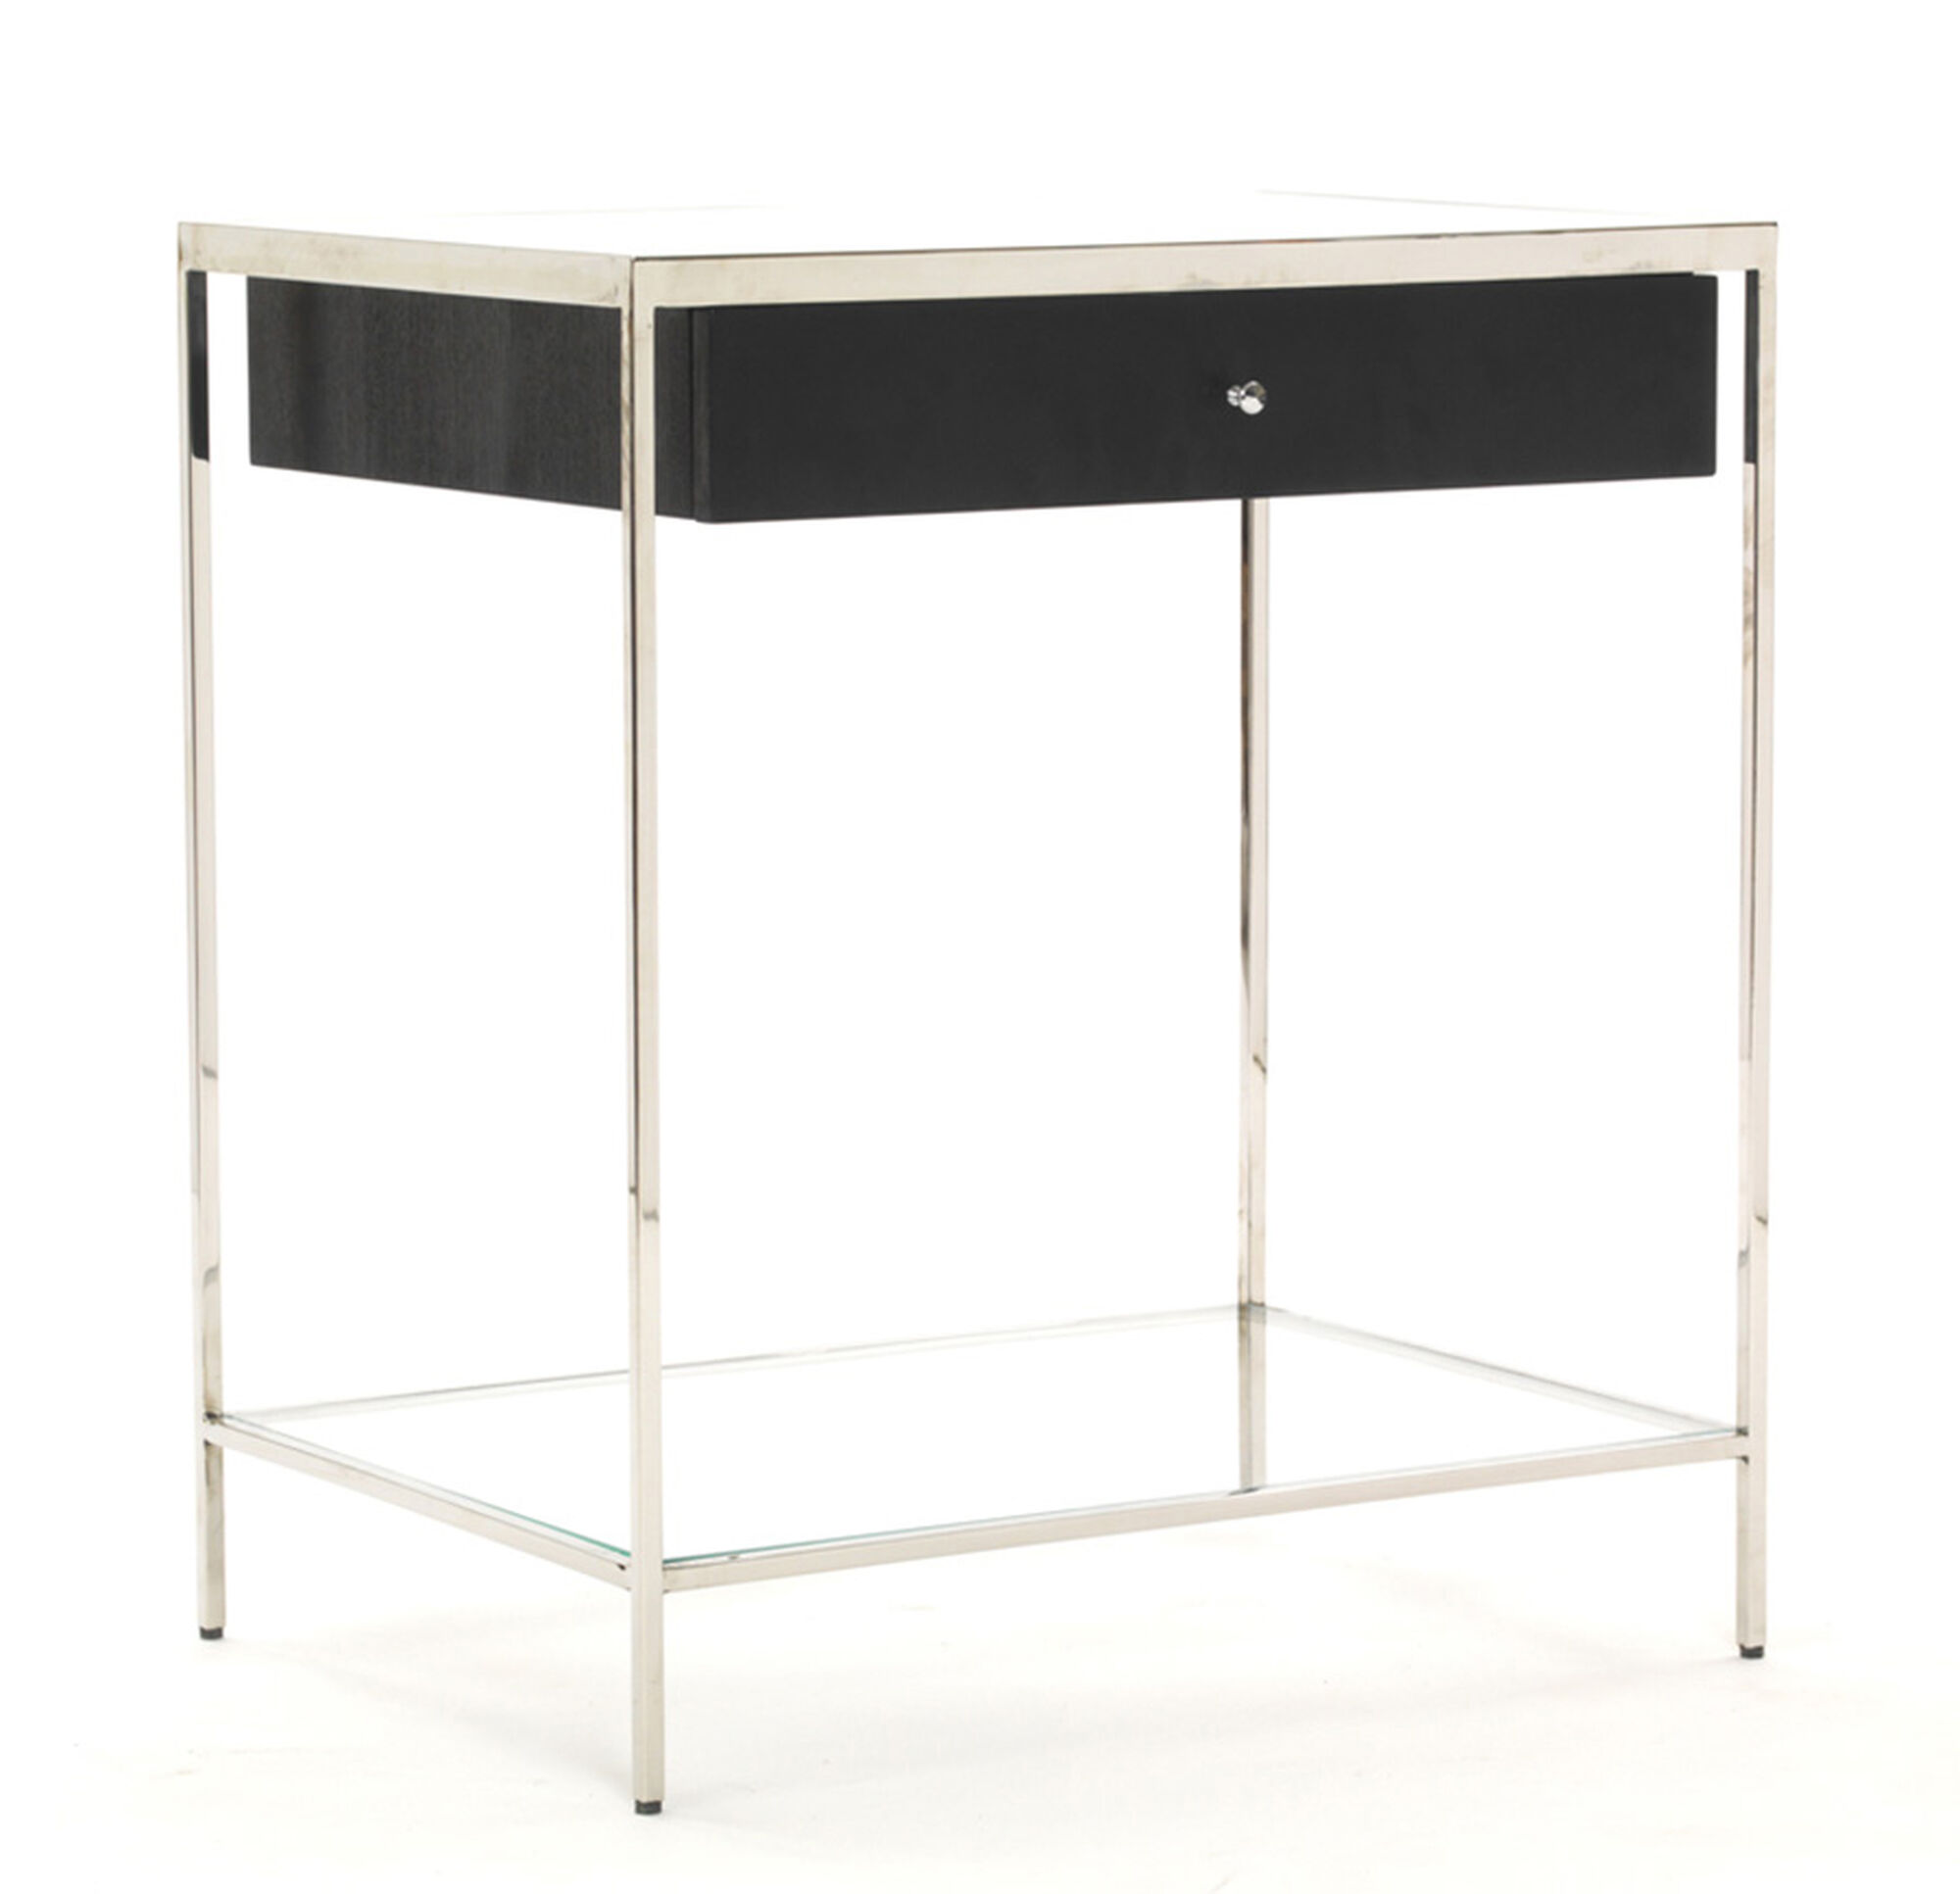 oak end trunk occasional sofa storage worldtipitaka center white thin glass skinny industrial sale round solid with funky full size acrylic side drawer tall coffee small black for steel seagrass square of cheap buy drawers accent spaces chairside table tables wood